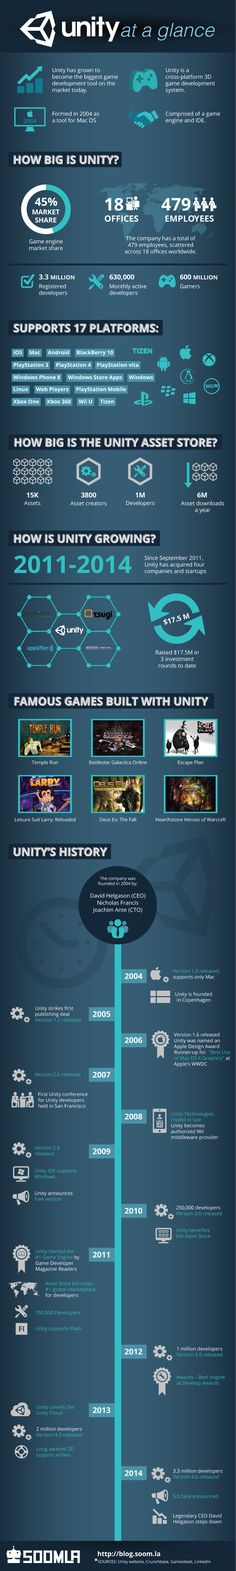 Unity is a fascinating company that grew from a 3-person garage stint into the world's biggest gaming engine, used by millions of game developers. With 45% market share, Unity is the natural choice for most indie developers. This first every Unity infographic exhibits quick facts about the company and examines exactly how big Unity is including Unity Asset Store statistics. We also explores the history of Unity on a timeline. A must-see for every indie game developer! #infographic